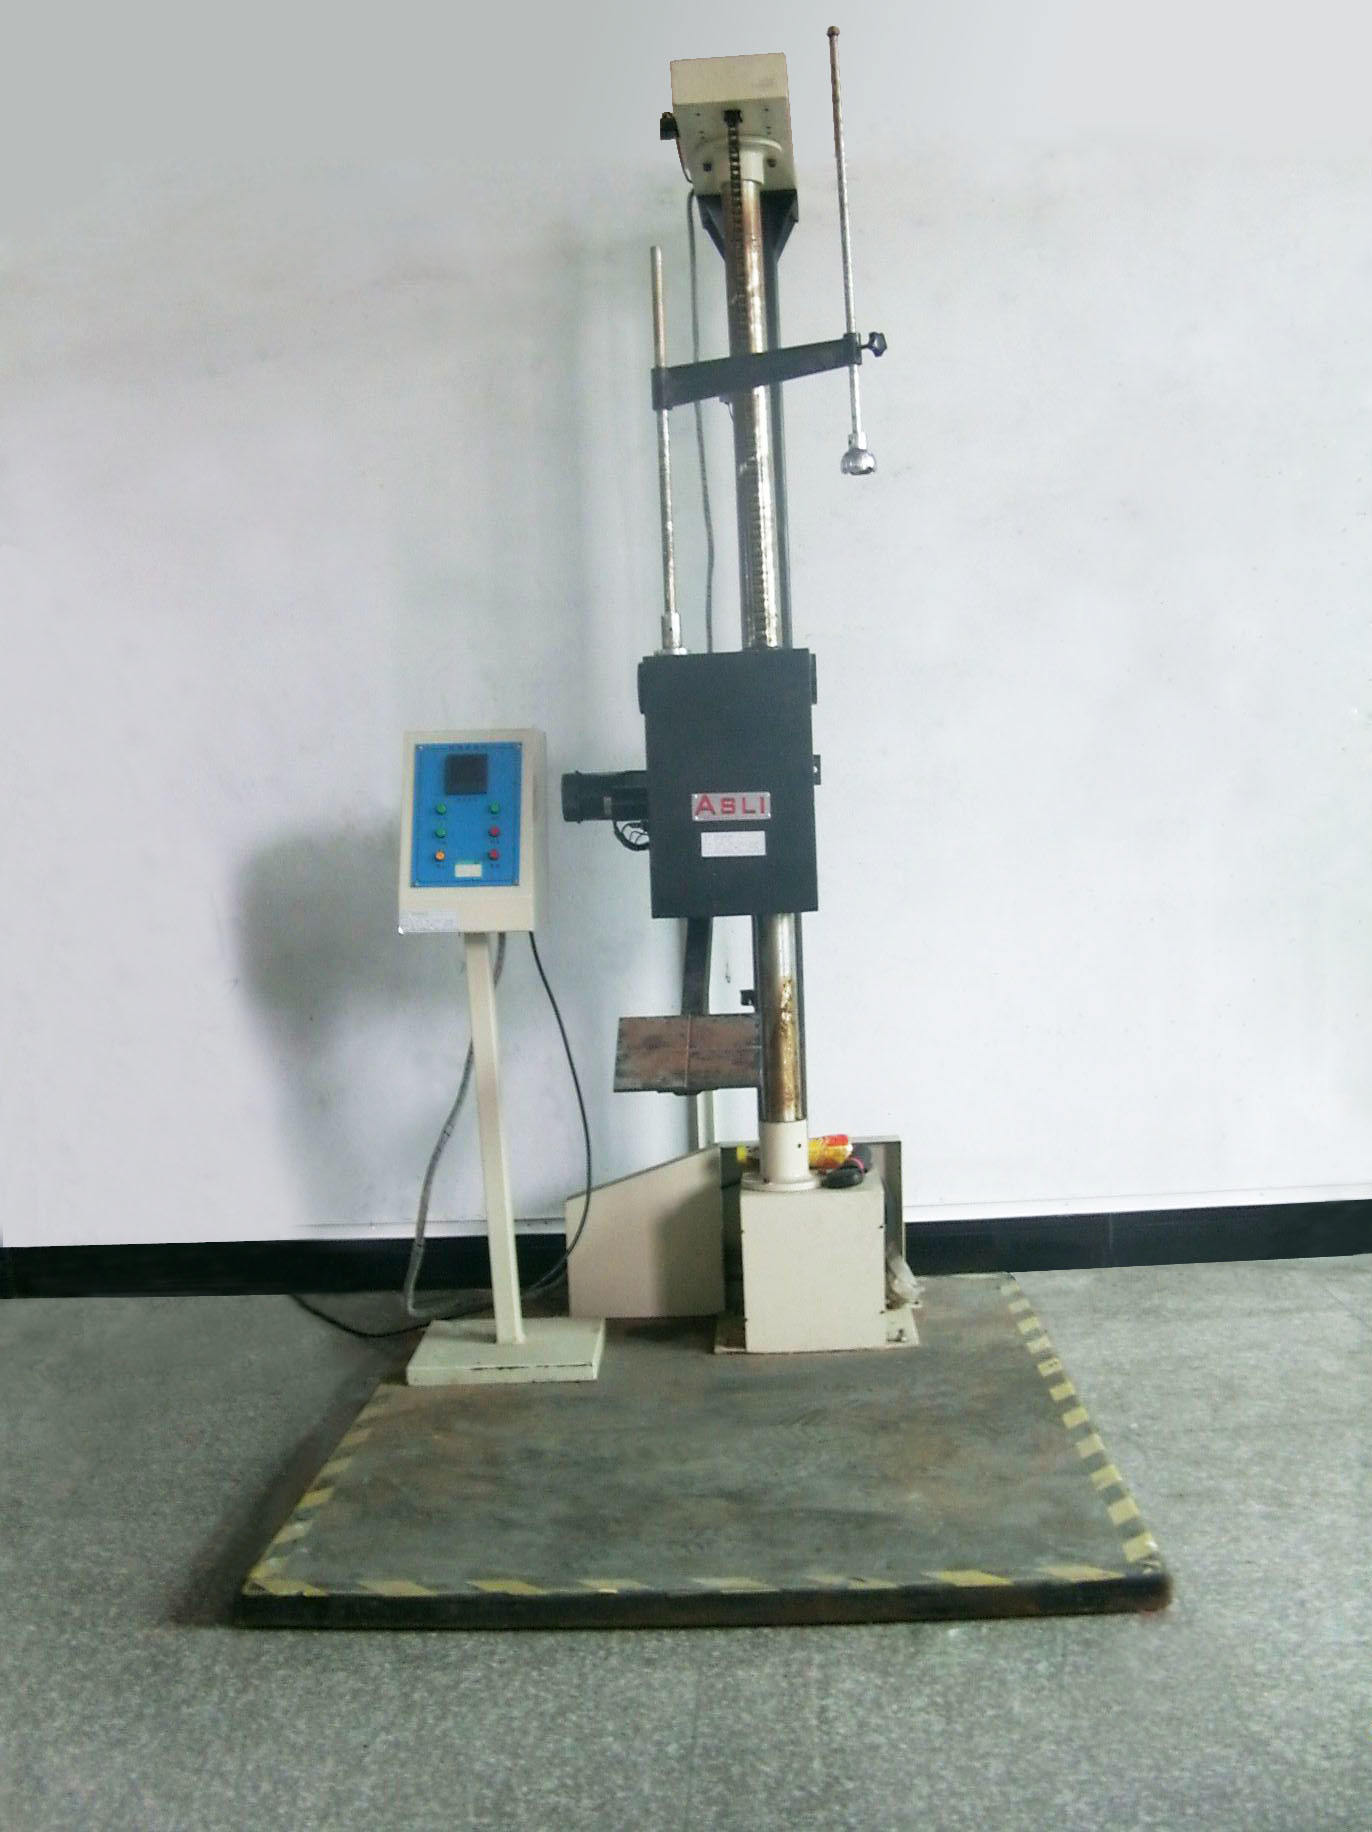 Package Carton Drop Tester / Free Falling Drop Test Machine